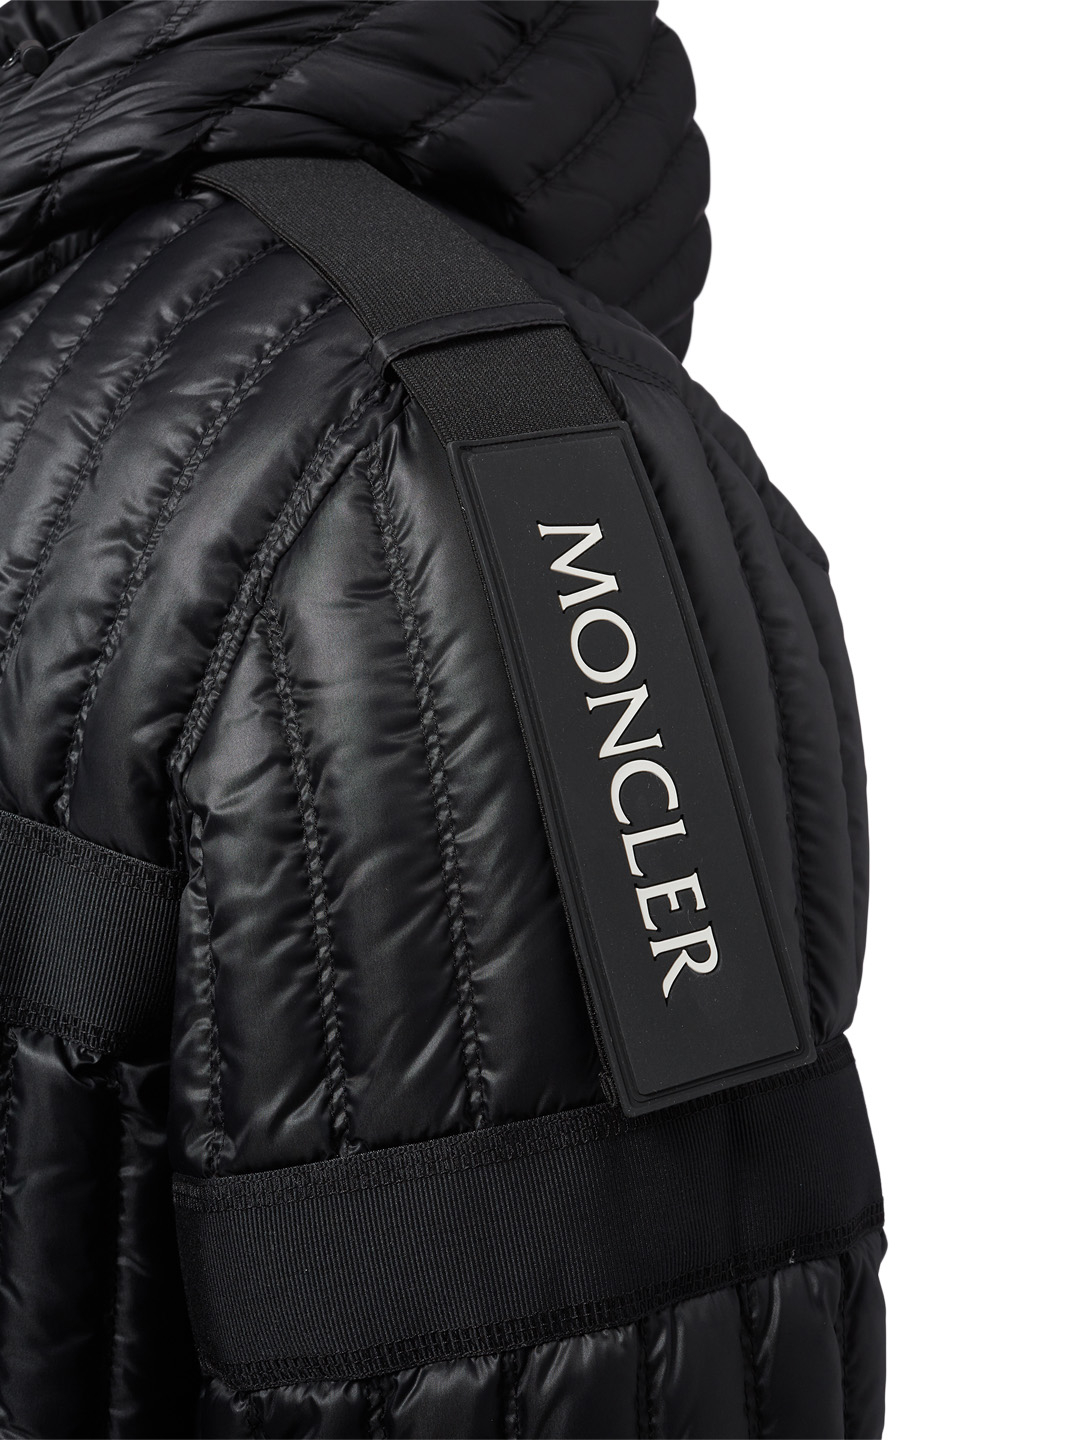 MONCLER GENIUS 5 Moncler x Craig Green Halibut Down Jacket Men's Black